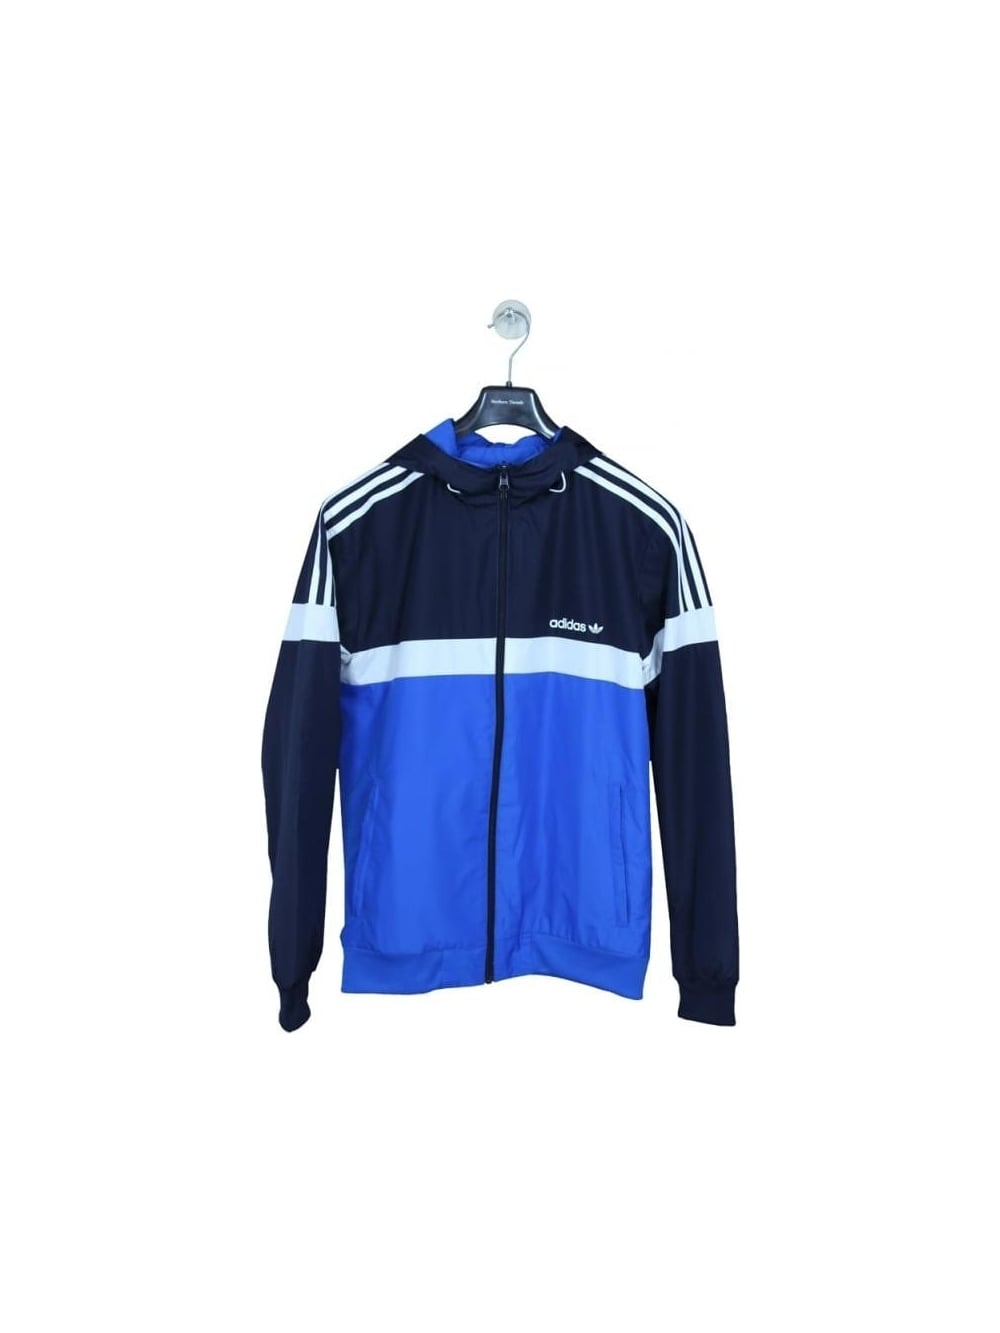 Adidas Originals Reversible Windbreaker Jacket Legend Ink